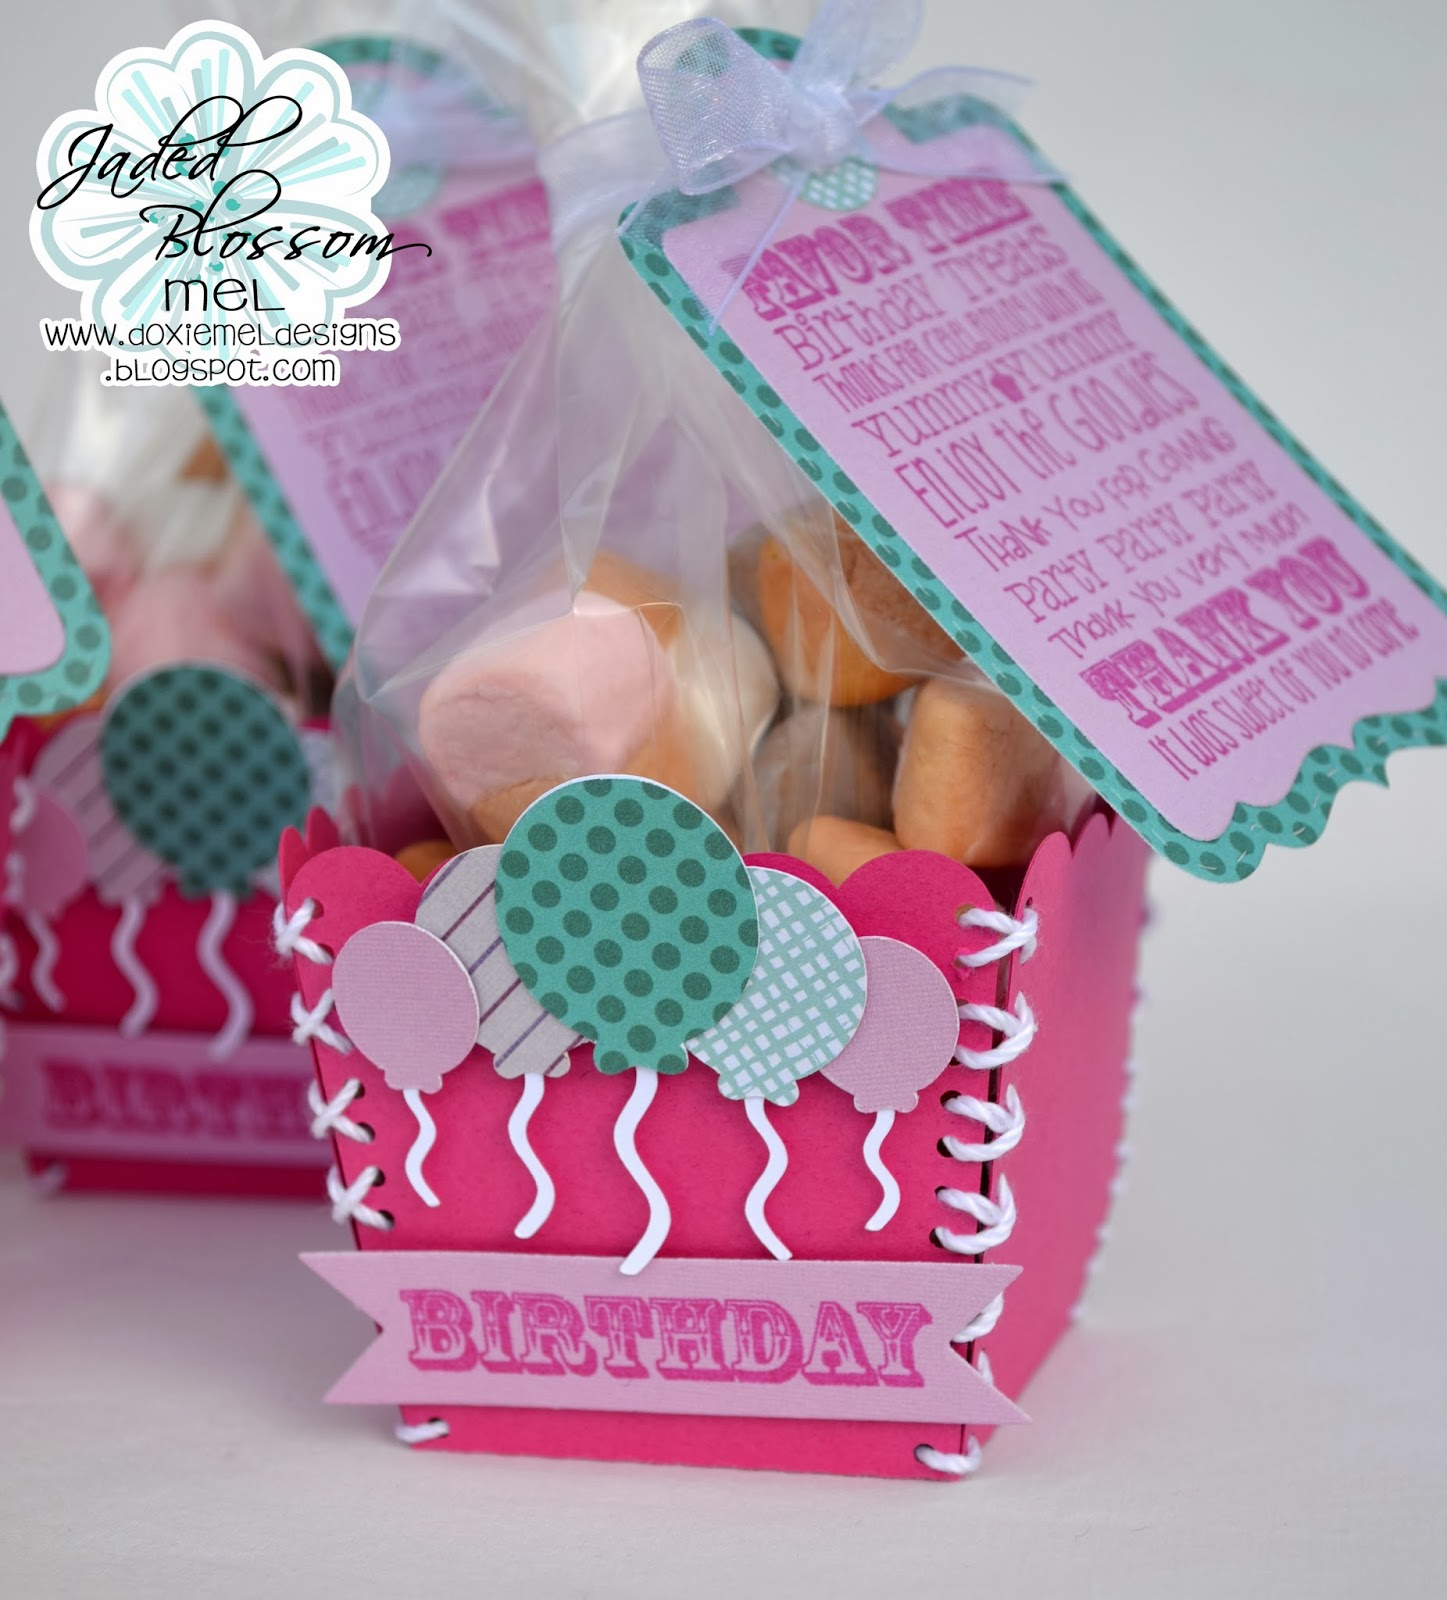 Doxie Mel Designs: Jaded Blossom Sneak - Day 2 :: Birthday Favors